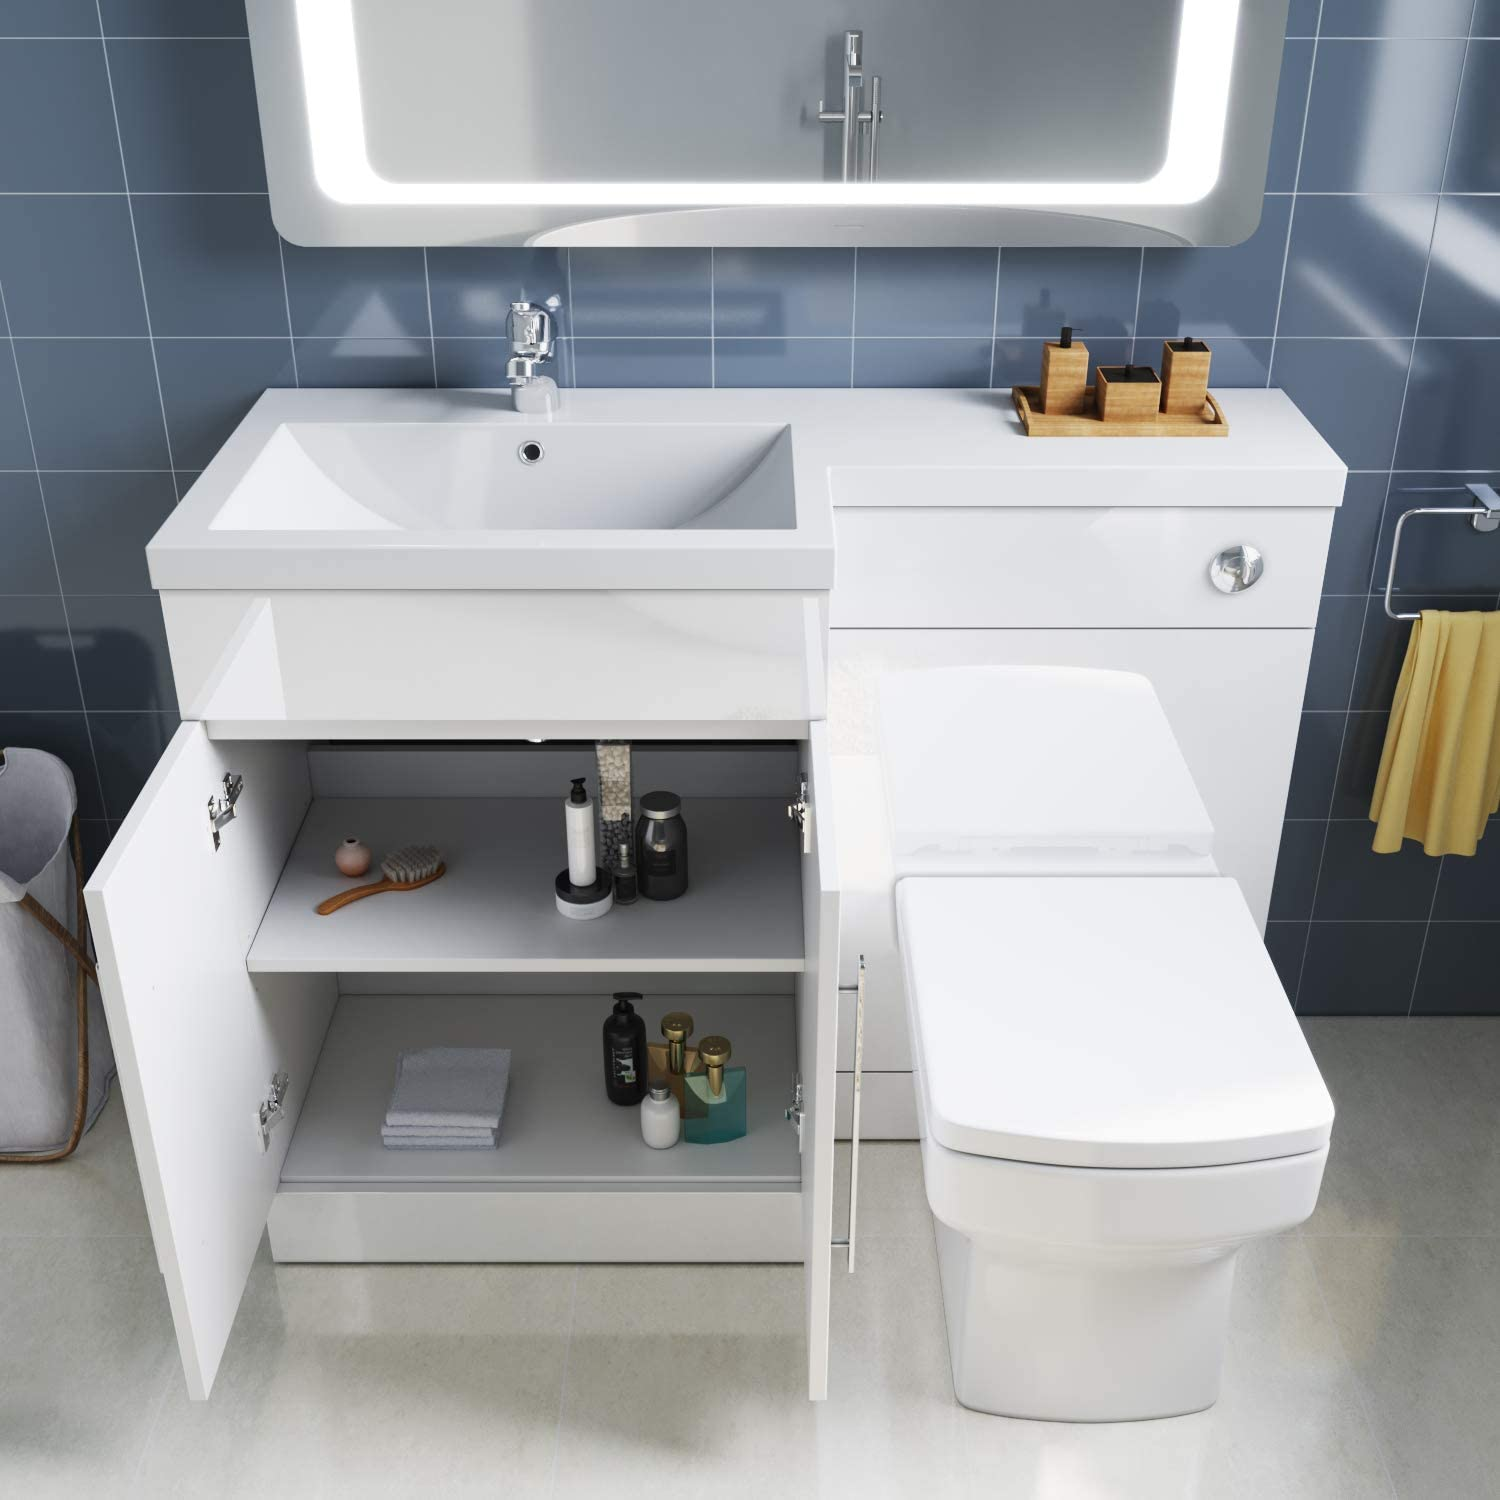 ELEGANT 1100mm Left Hand High Gloss White Vanity Unit /& Back to Wall Toilet Unit with Square Toilet /& Basin